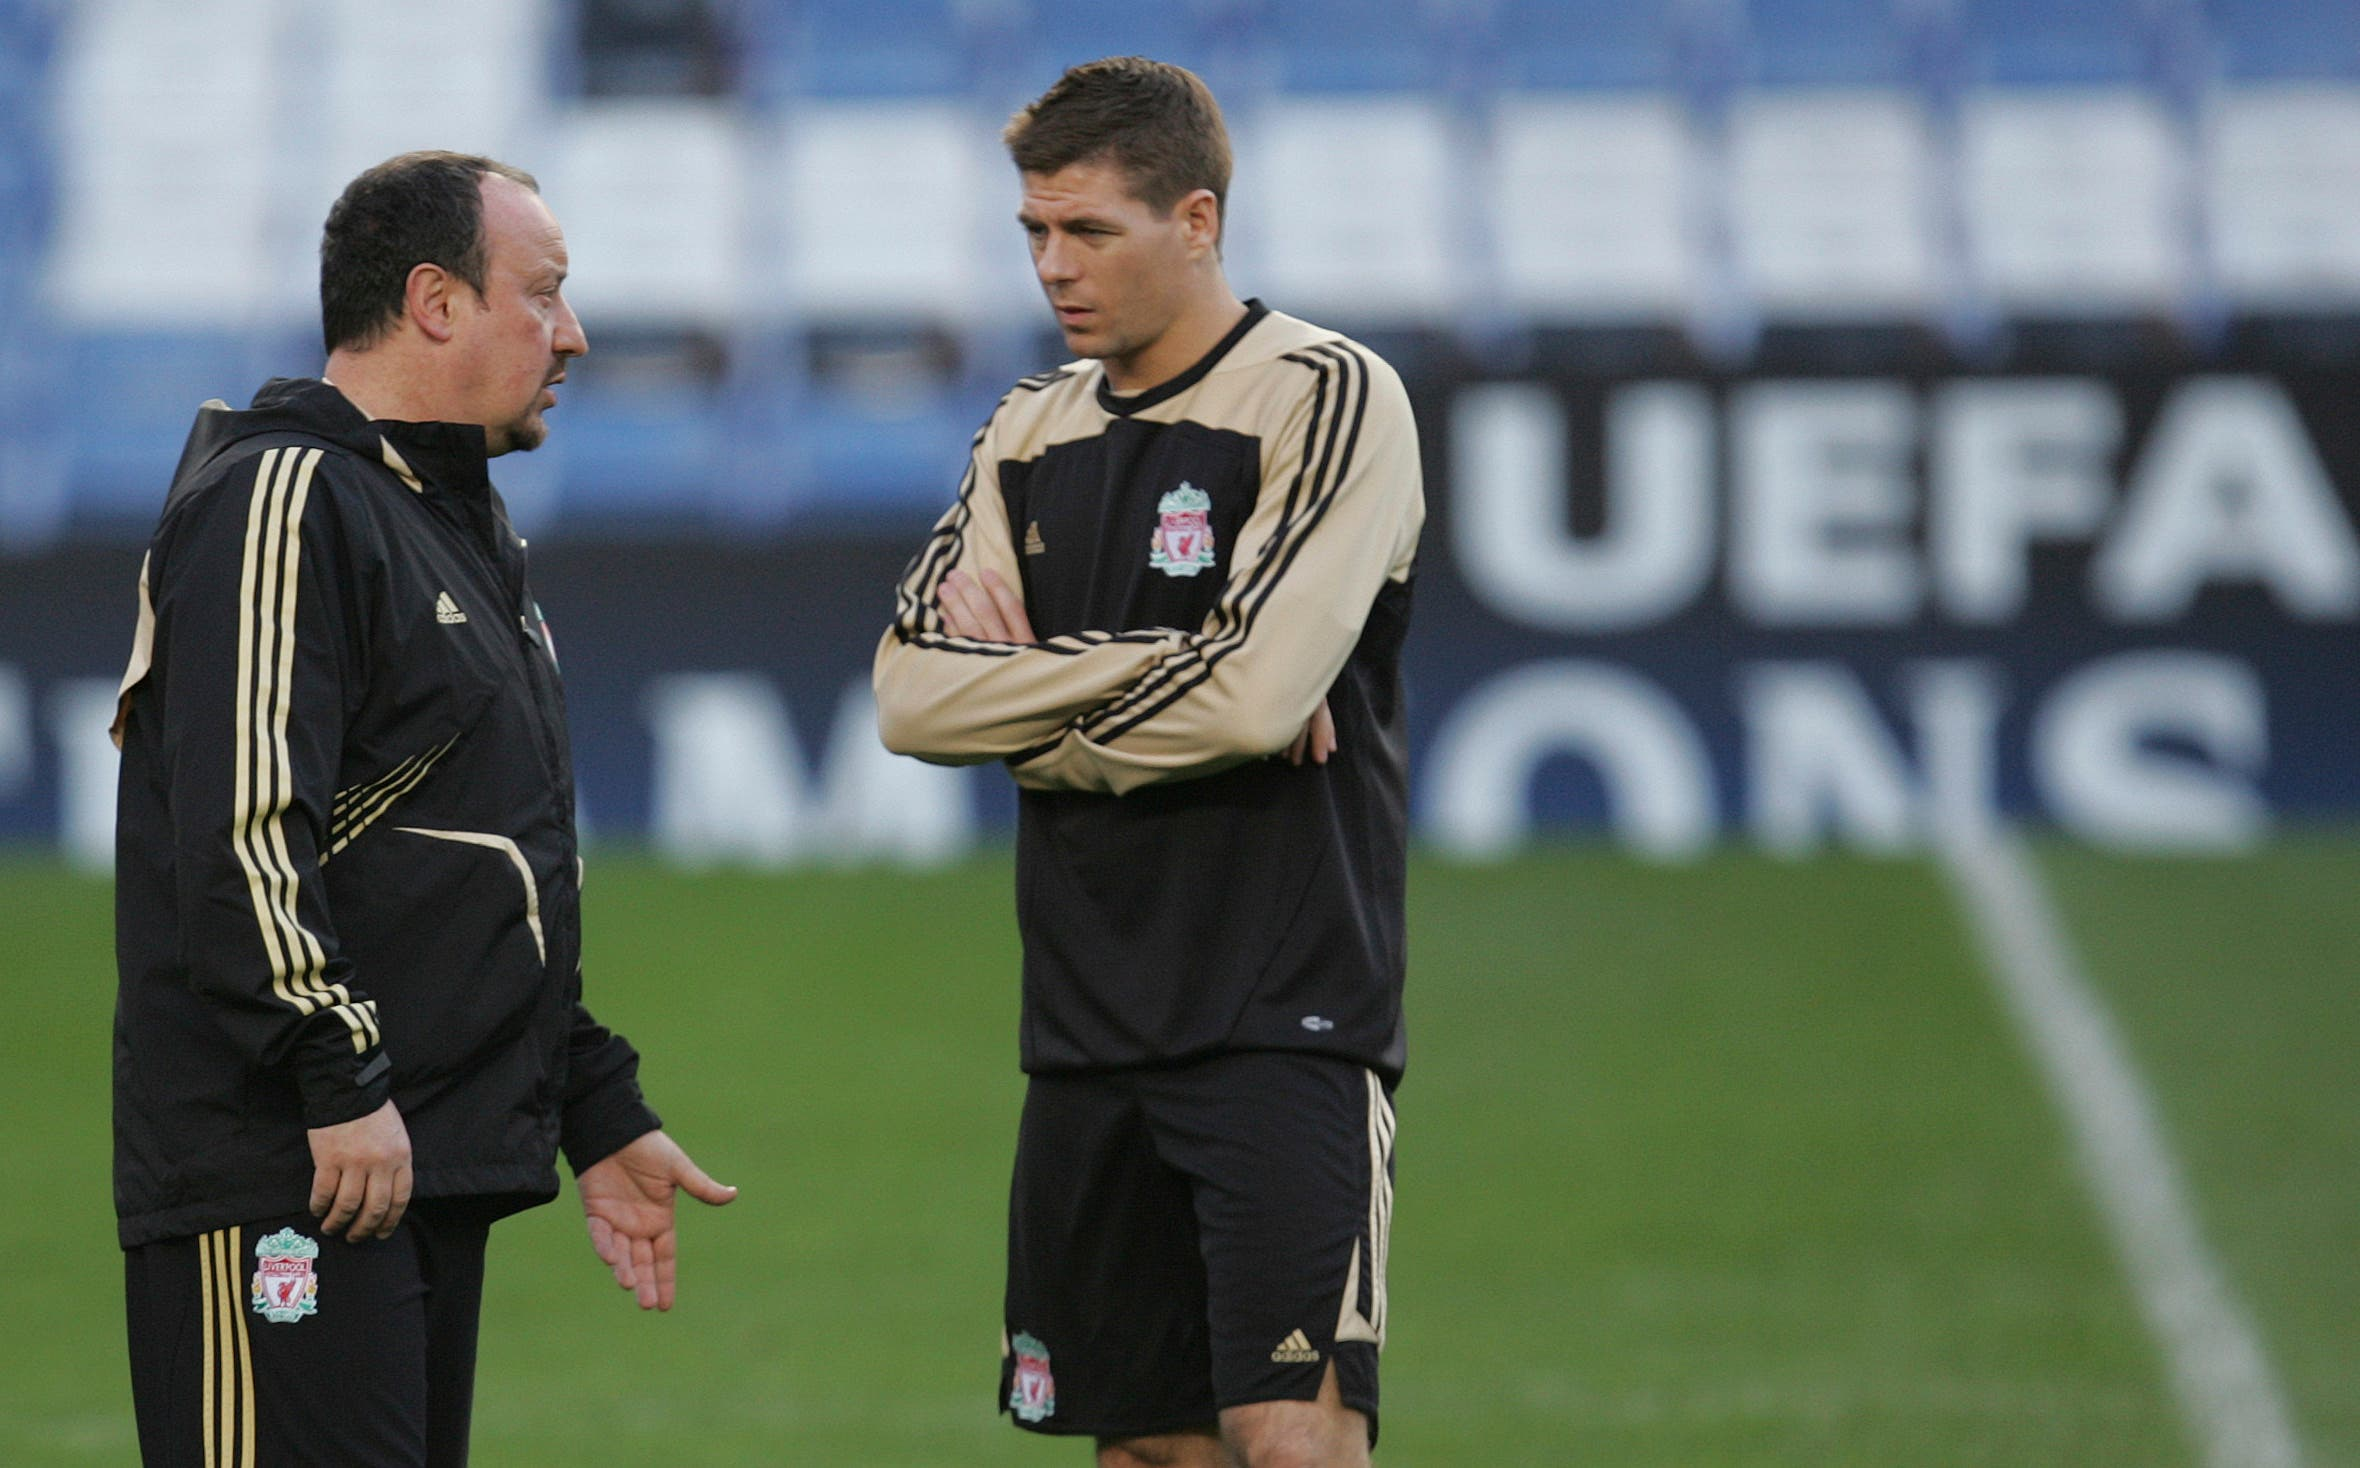 Liverpool's coach Rafael Benitez, left, talks to Steven Gerrard during a training session at Chelsea's Stamford Bridge stadium in London Monday, April, 13, 2009, in preparation for their Champions League quarterfinal second leg soccer match against Chelsea, Tuesday, April 14, in London. (AP)